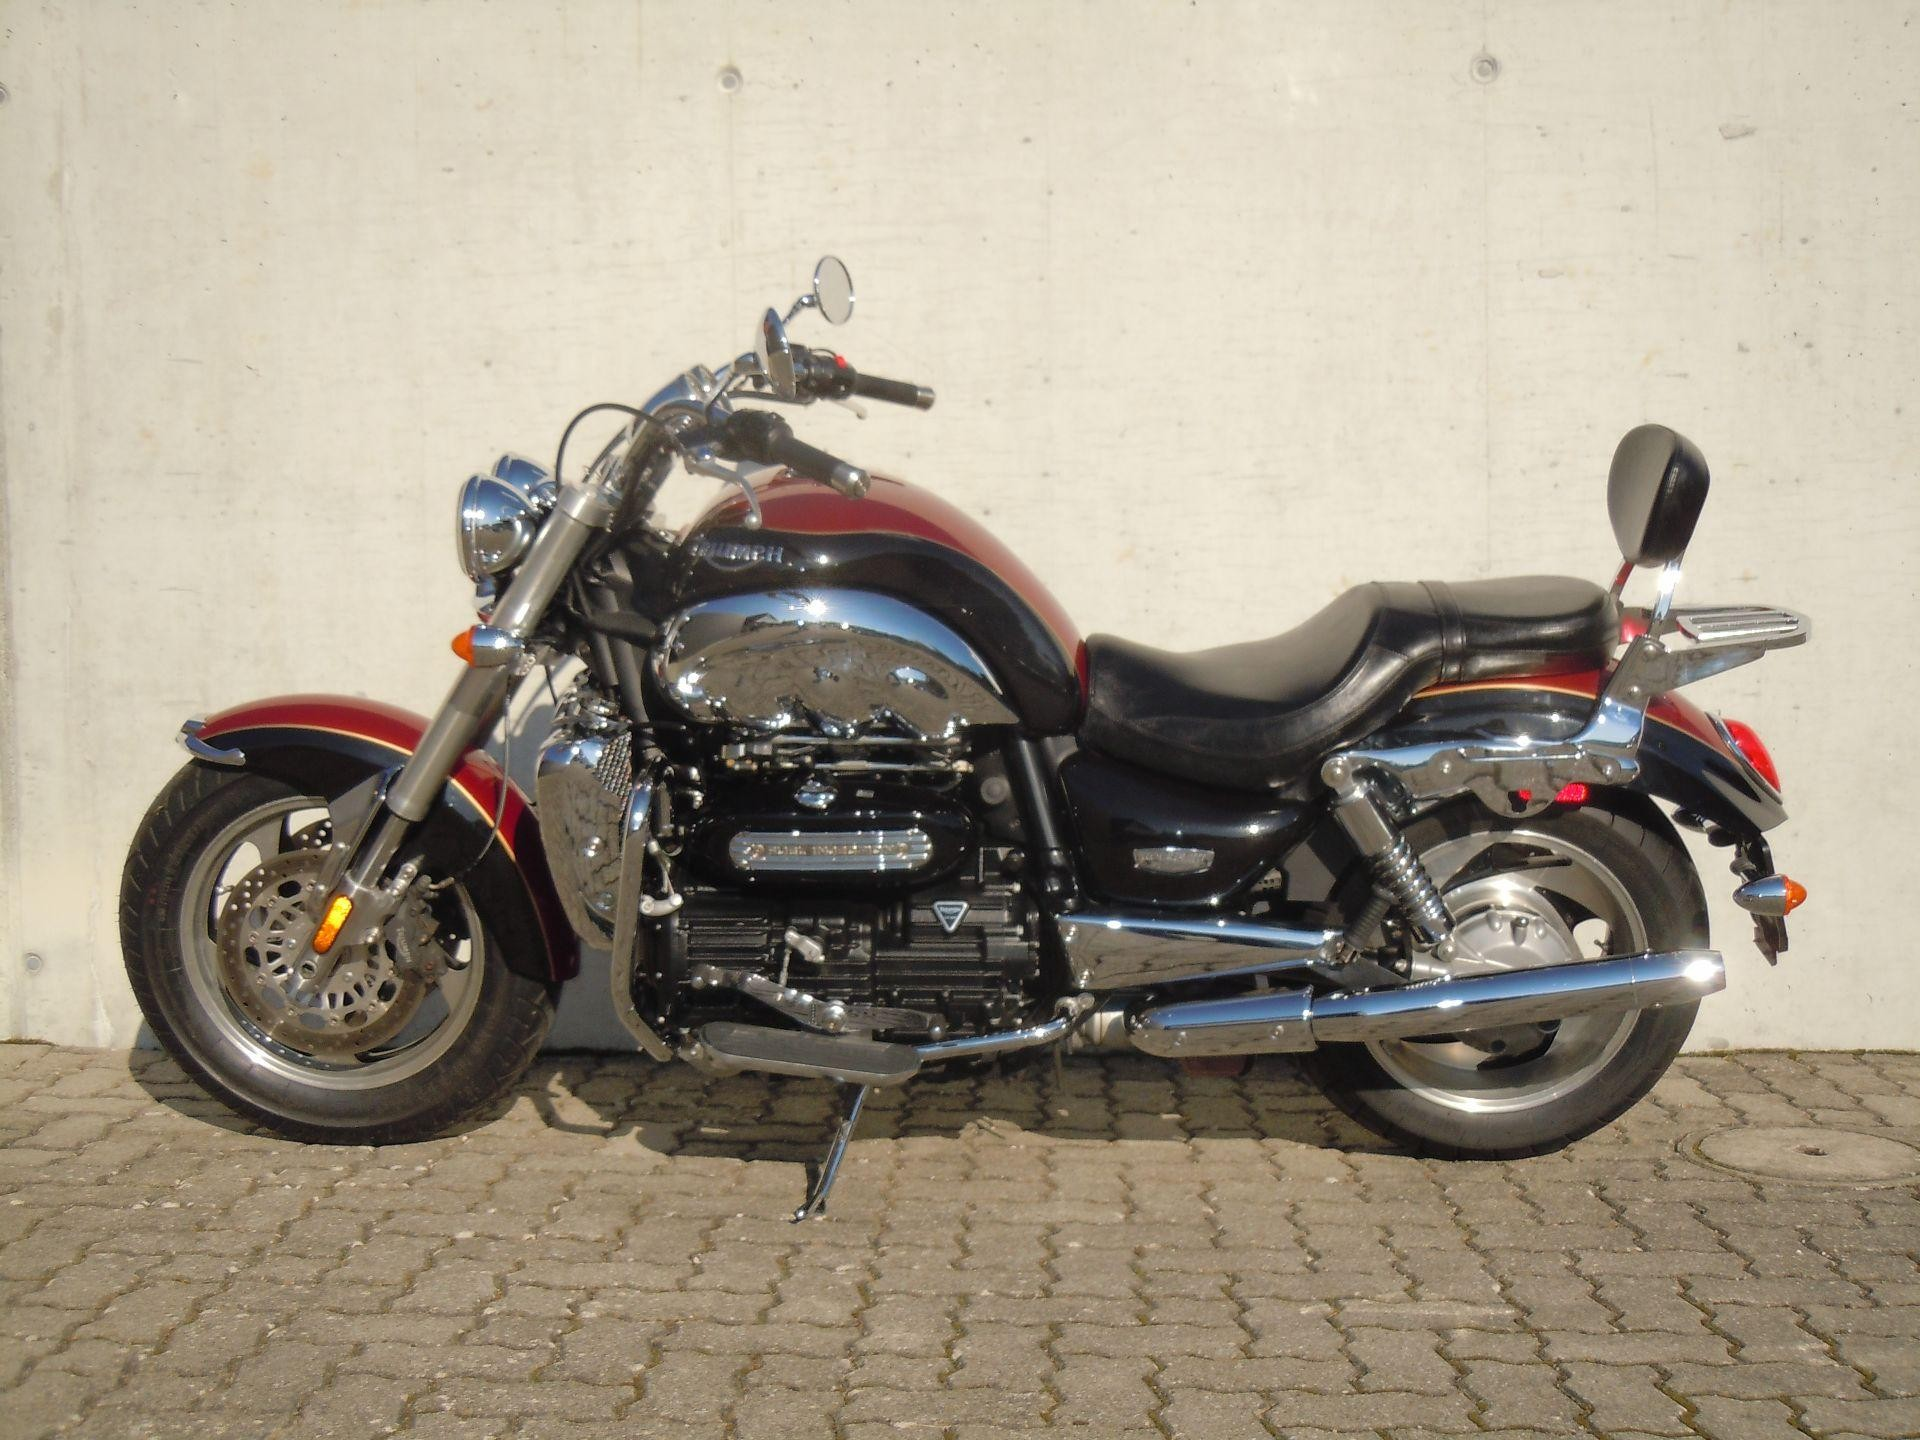 motorrad occasion kaufen triumph rocket iii 2300 classic mit zubeh r rolf gall superbikes ag. Black Bedroom Furniture Sets. Home Design Ideas